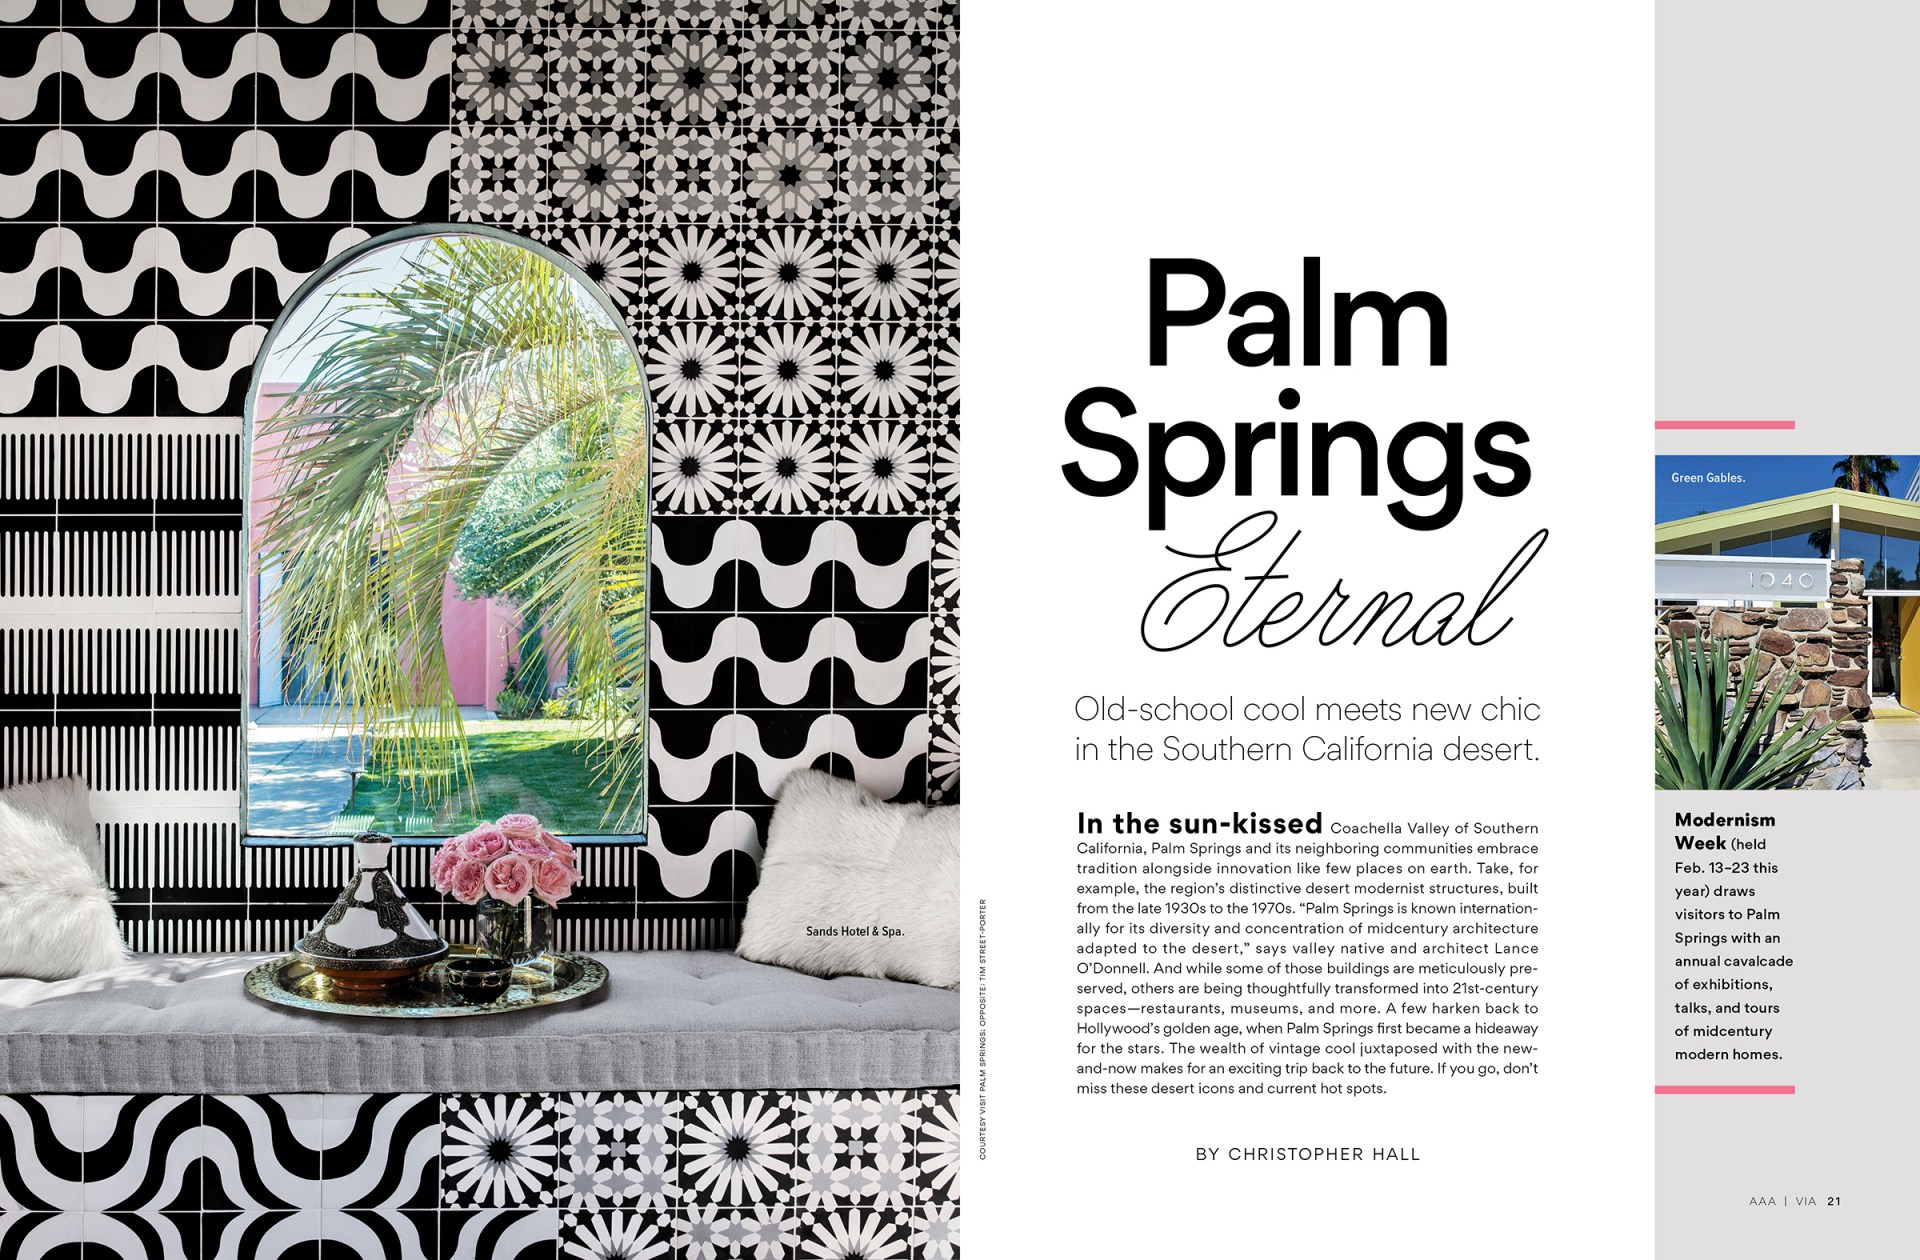 Palm Springs feature spread